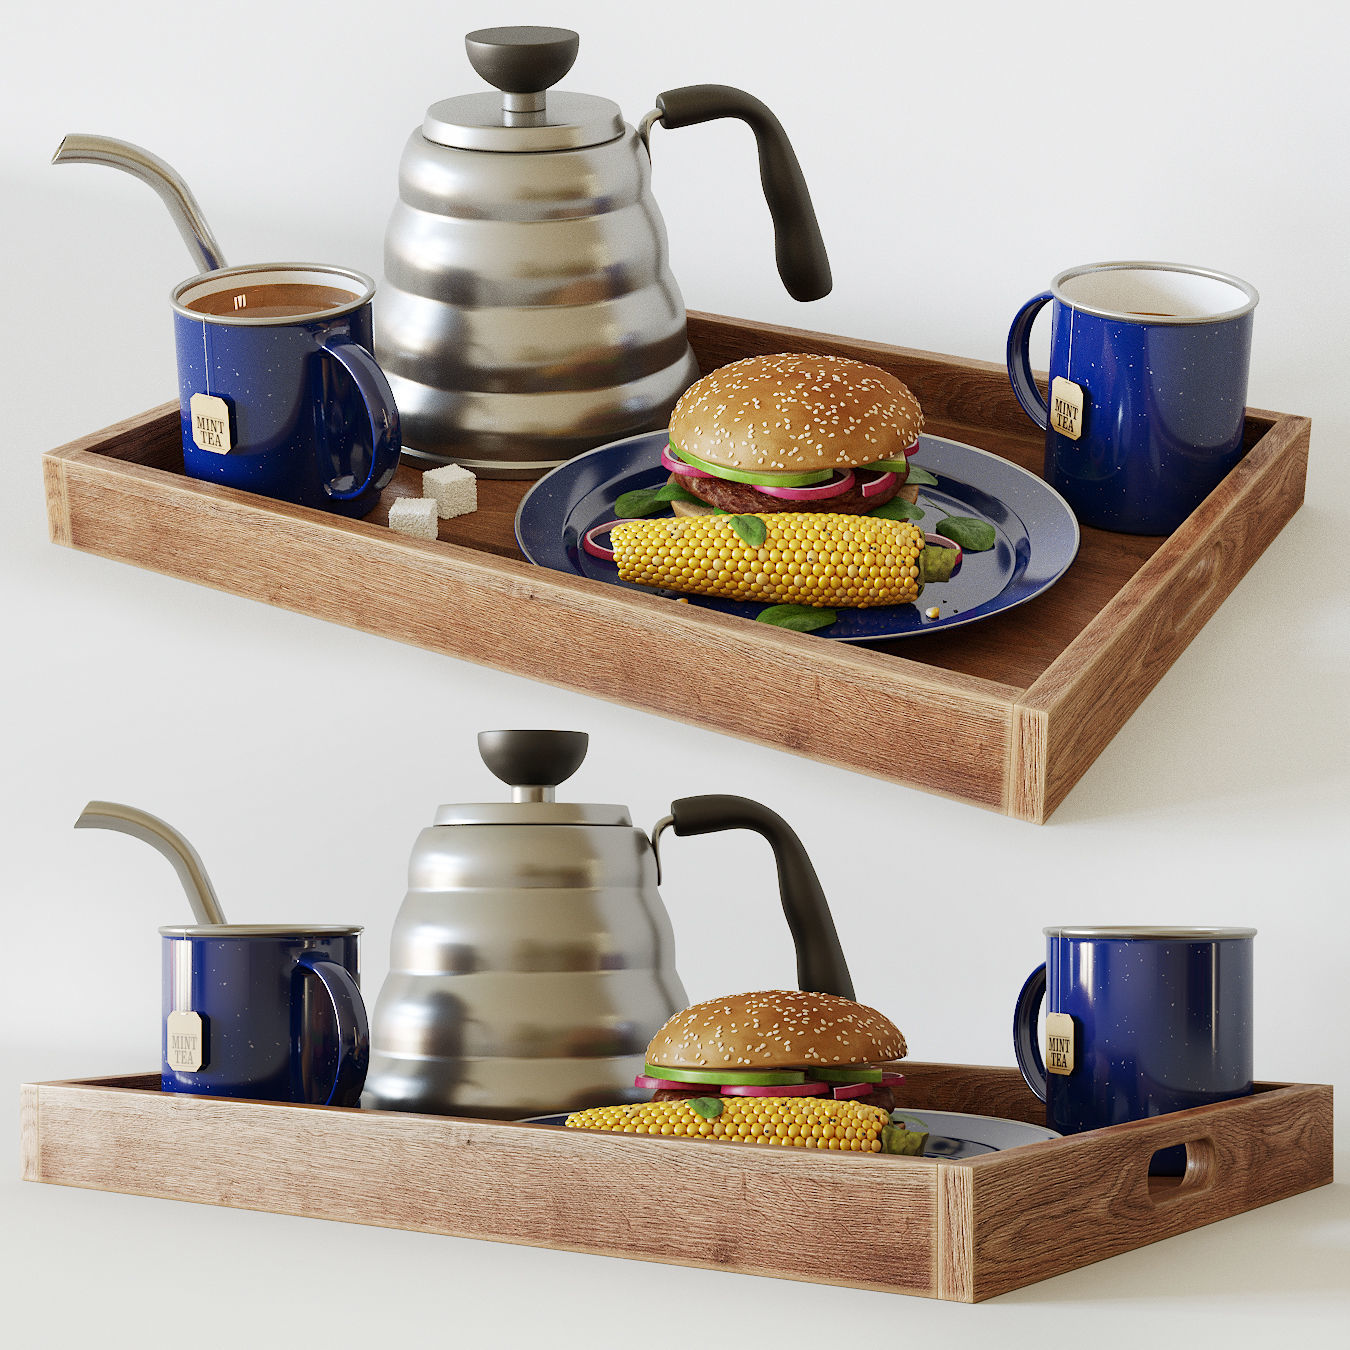 Breakfast decorative set